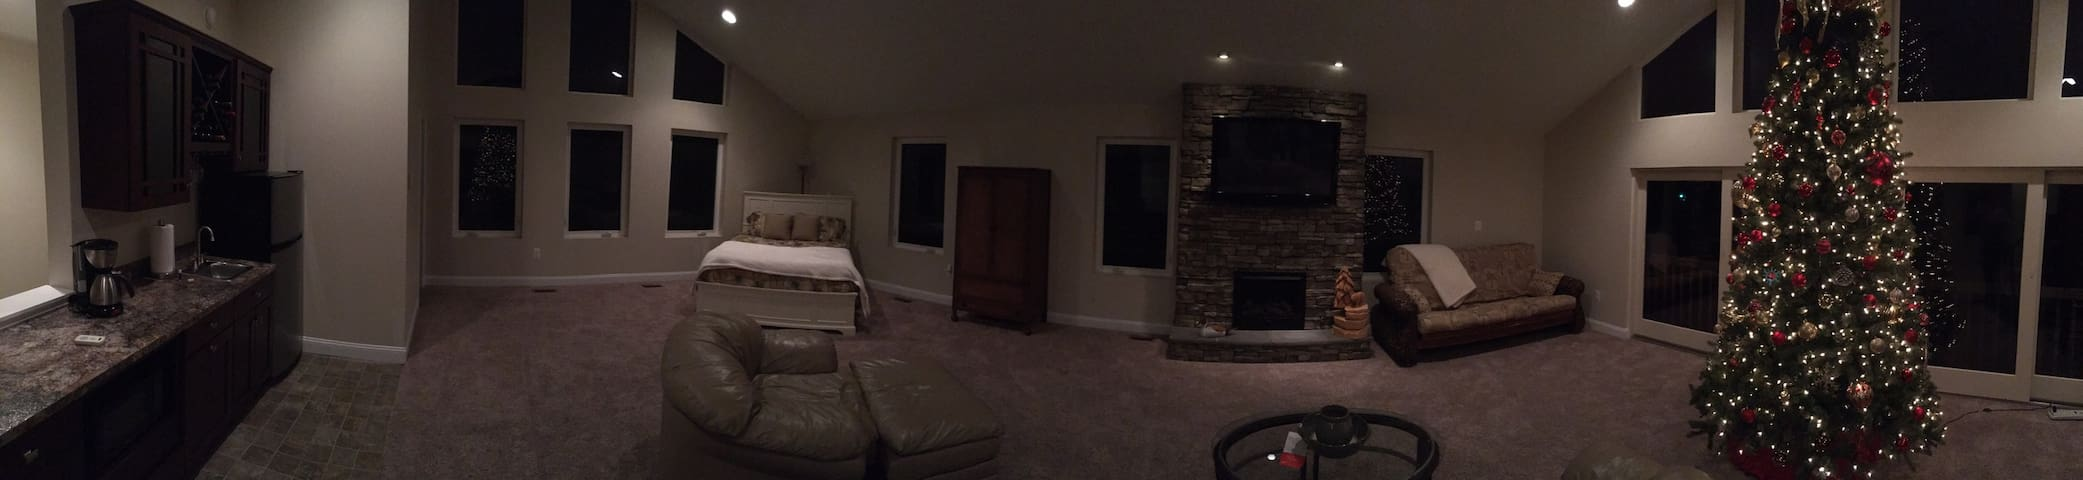 Click to see a panoramic of the entire room!